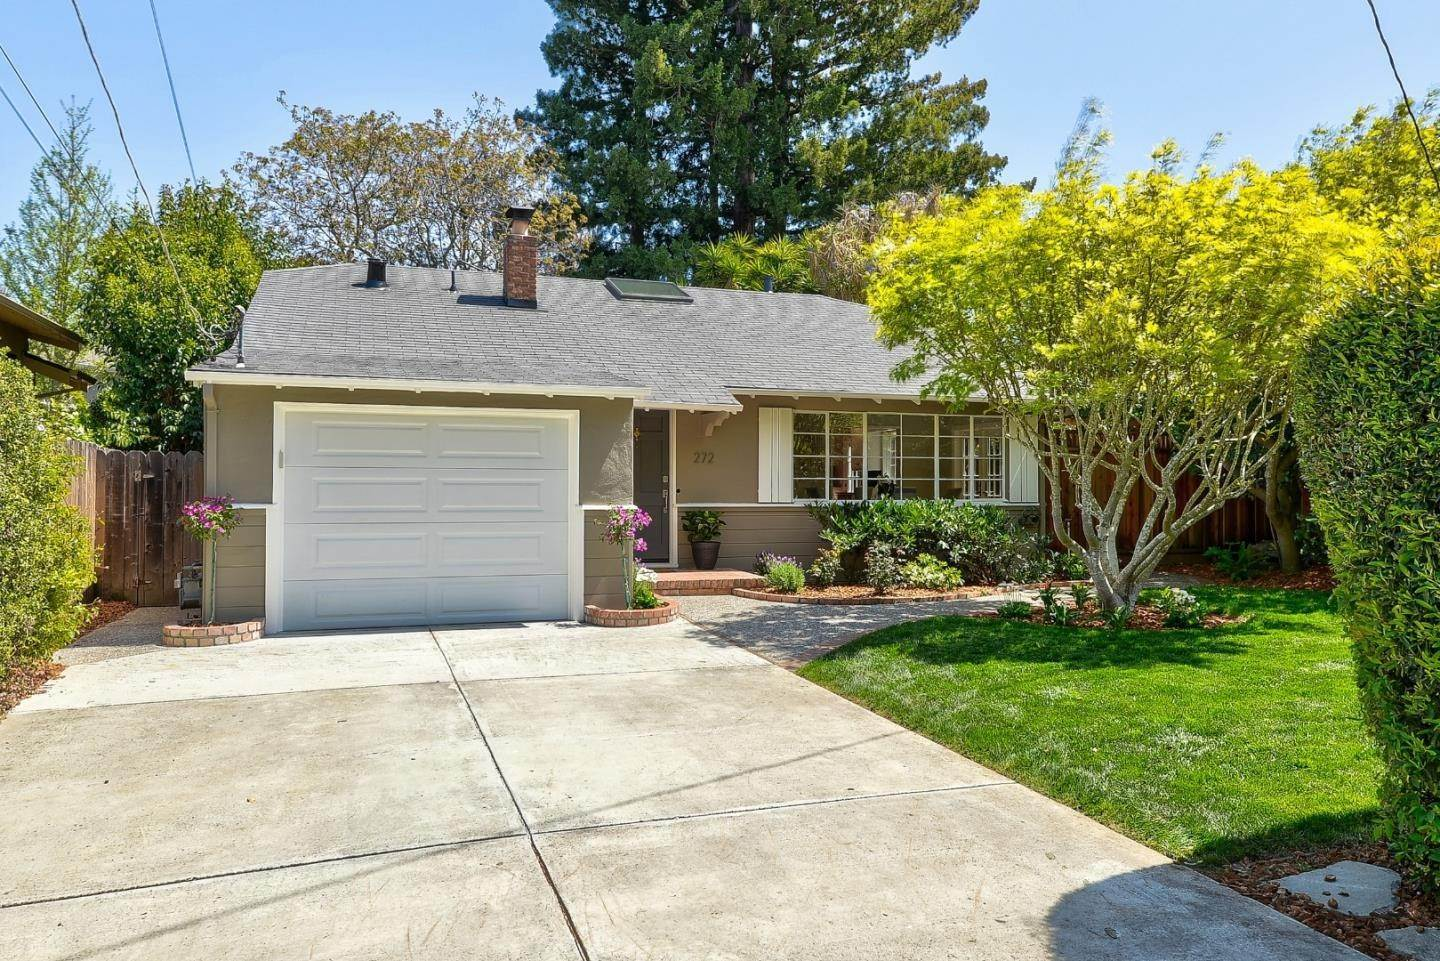 Single Family Homes for Sale at 272 Marmona Drive Menlo Park, California 94025 United States